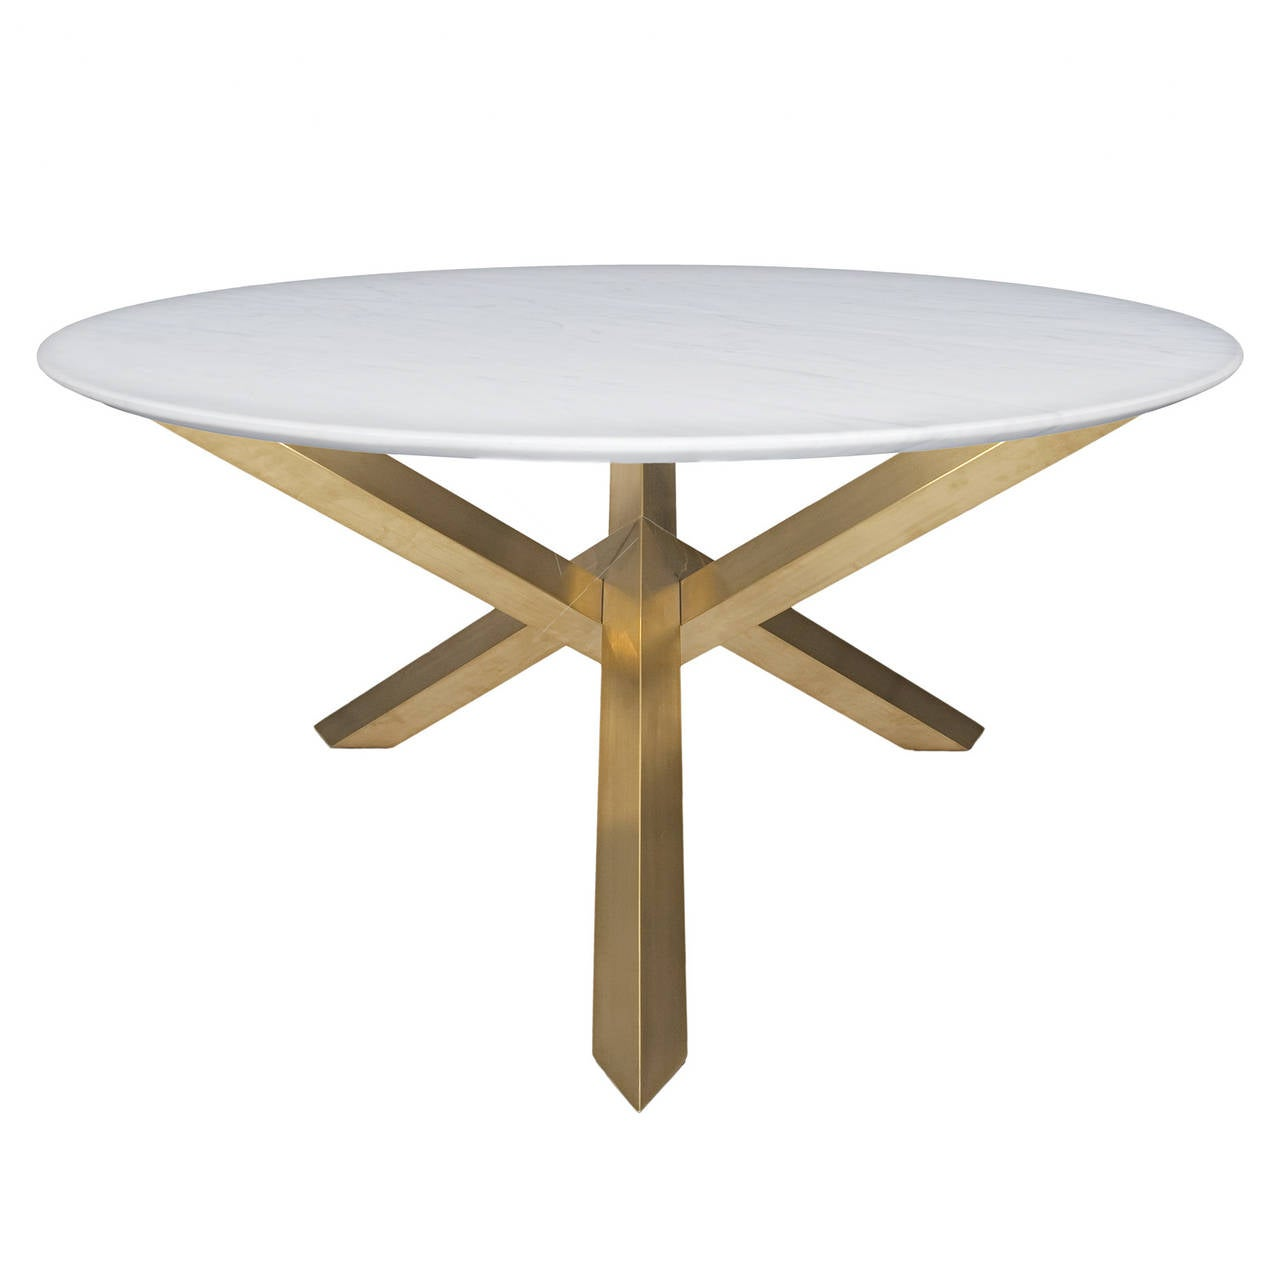 round dining table with brass legs for sale at 1stdibs. Black Bedroom Furniture Sets. Home Design Ideas